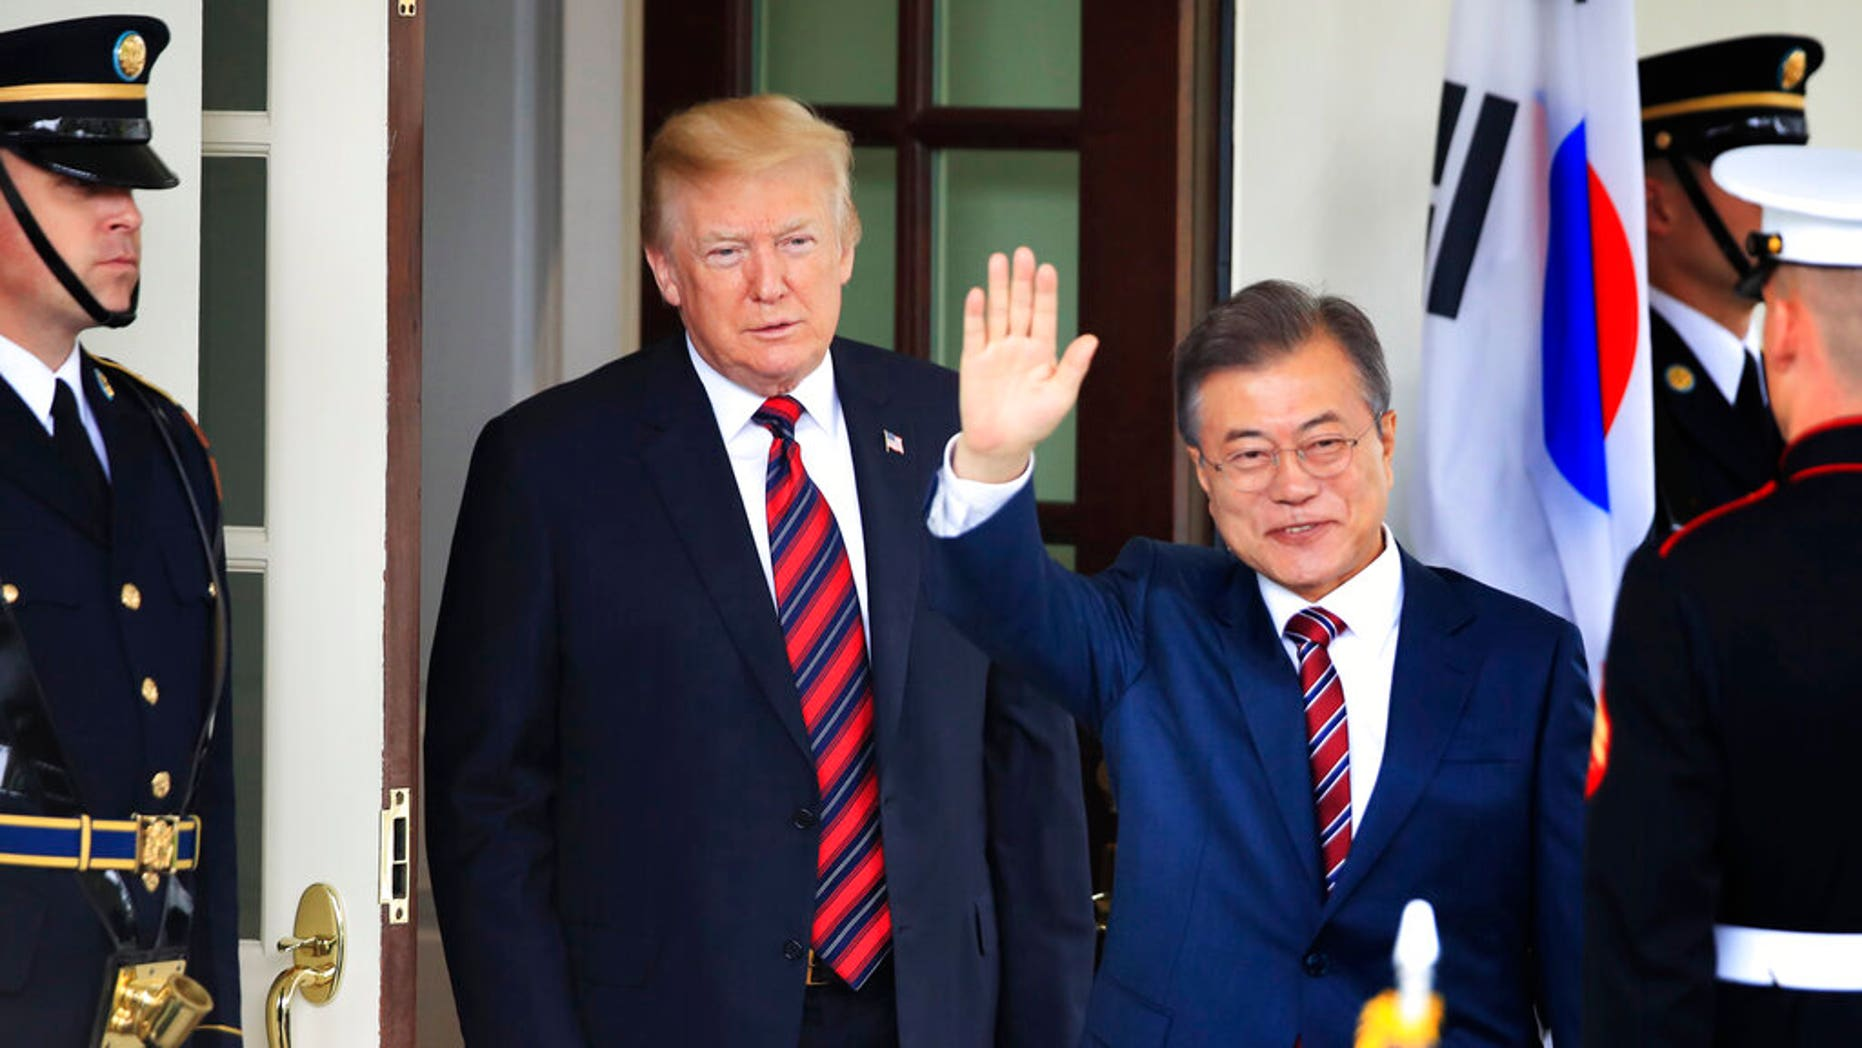 FILE: South Korean President Moon Jae-in waves as he is welcomed by U.S. President Donald Trump to the White House in Washington on May 22, 2018.